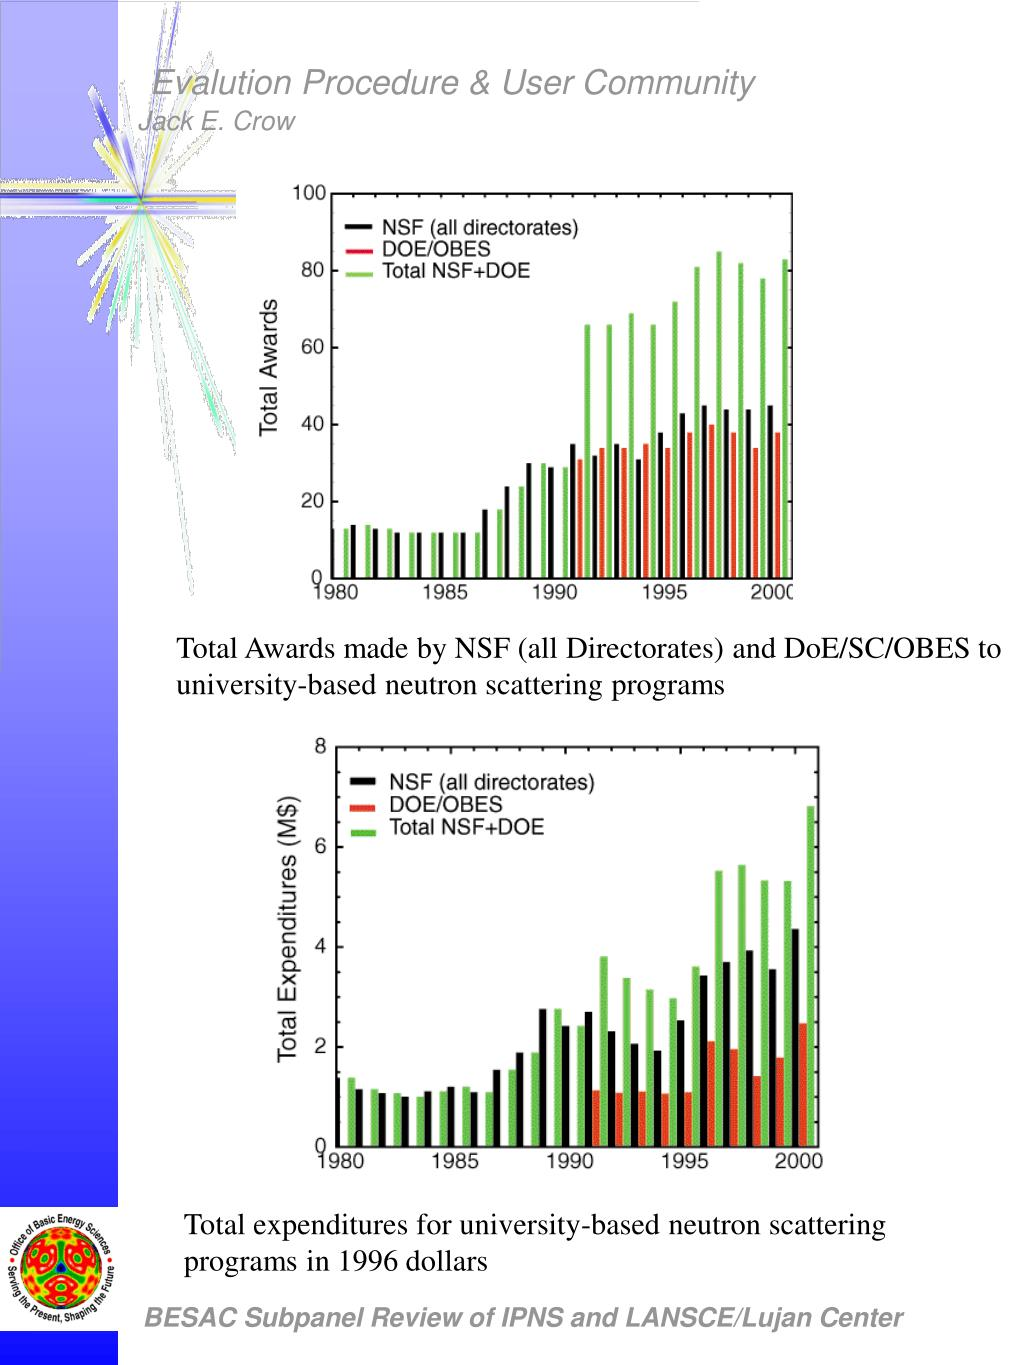 Total Awards made by NSF (all Directorates) and DoE/SC/OBES to university-based neutron scattering programs